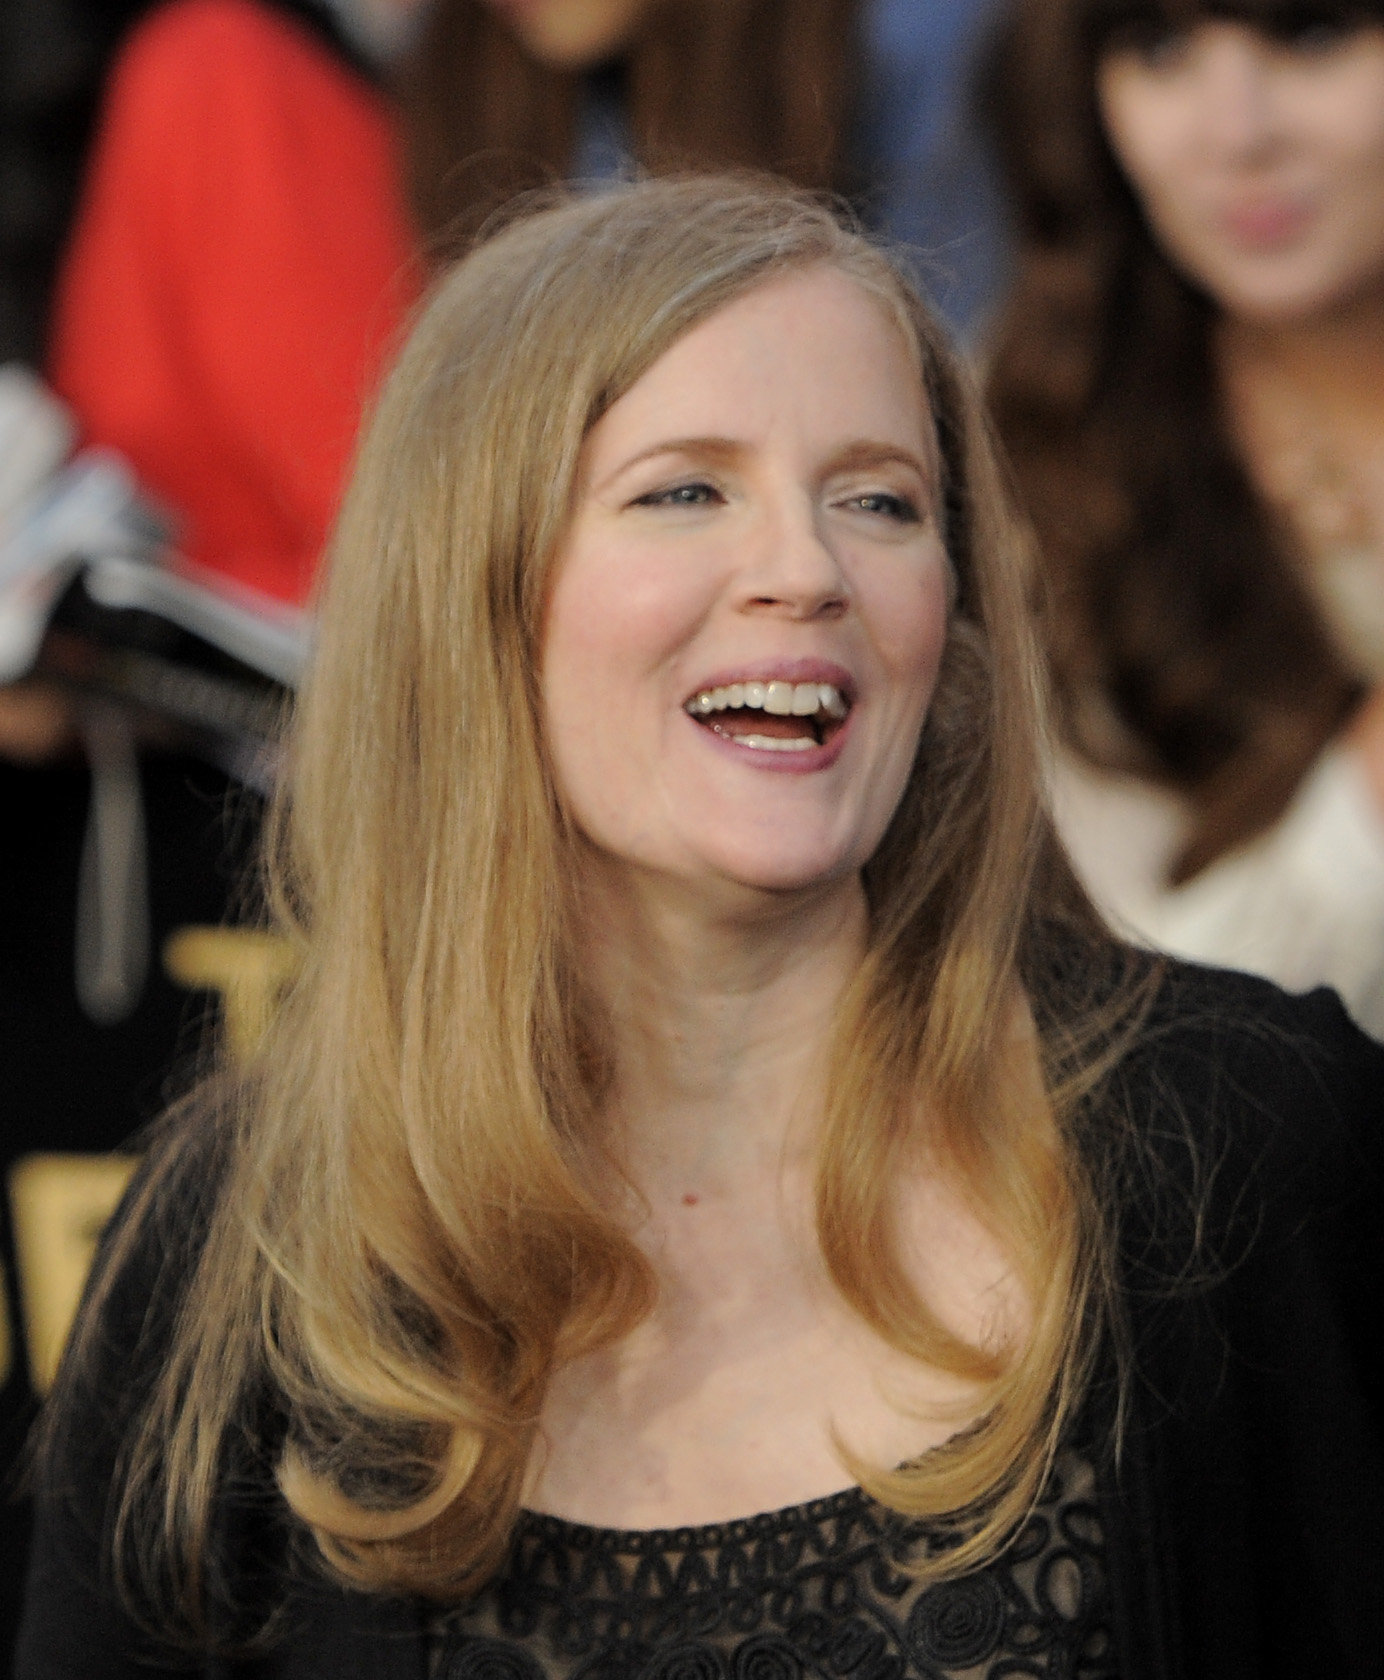 Photos Suzanne Collins nudes (91 photos), Ass, Fappening, Instagram, cleavage 2018